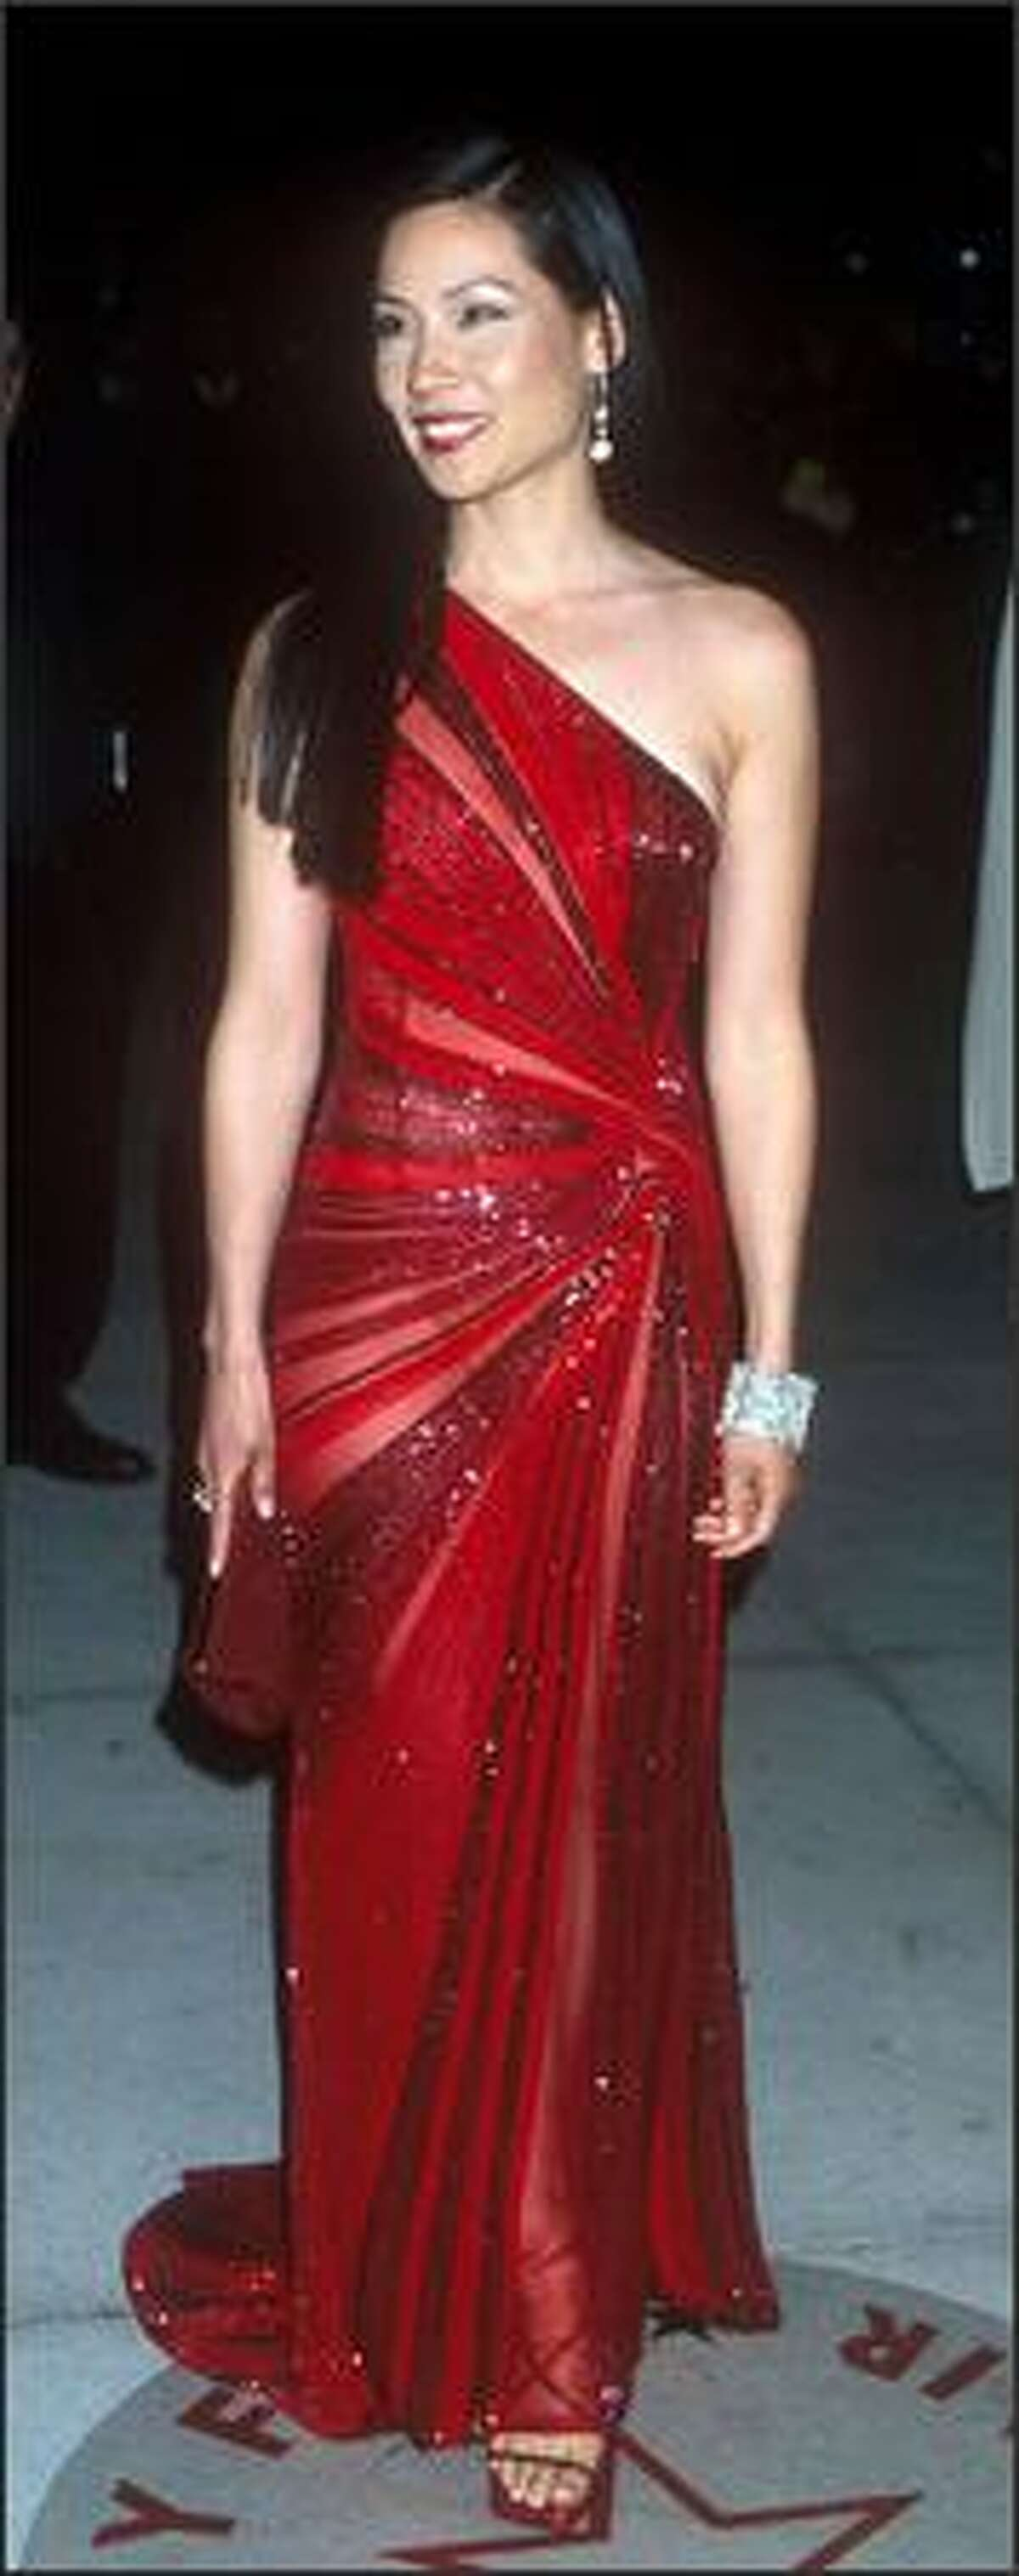 Lucy Liu attends the Vanity Fair Post-Oscar Party in West Hollywood, Calif., March 26, 2000.